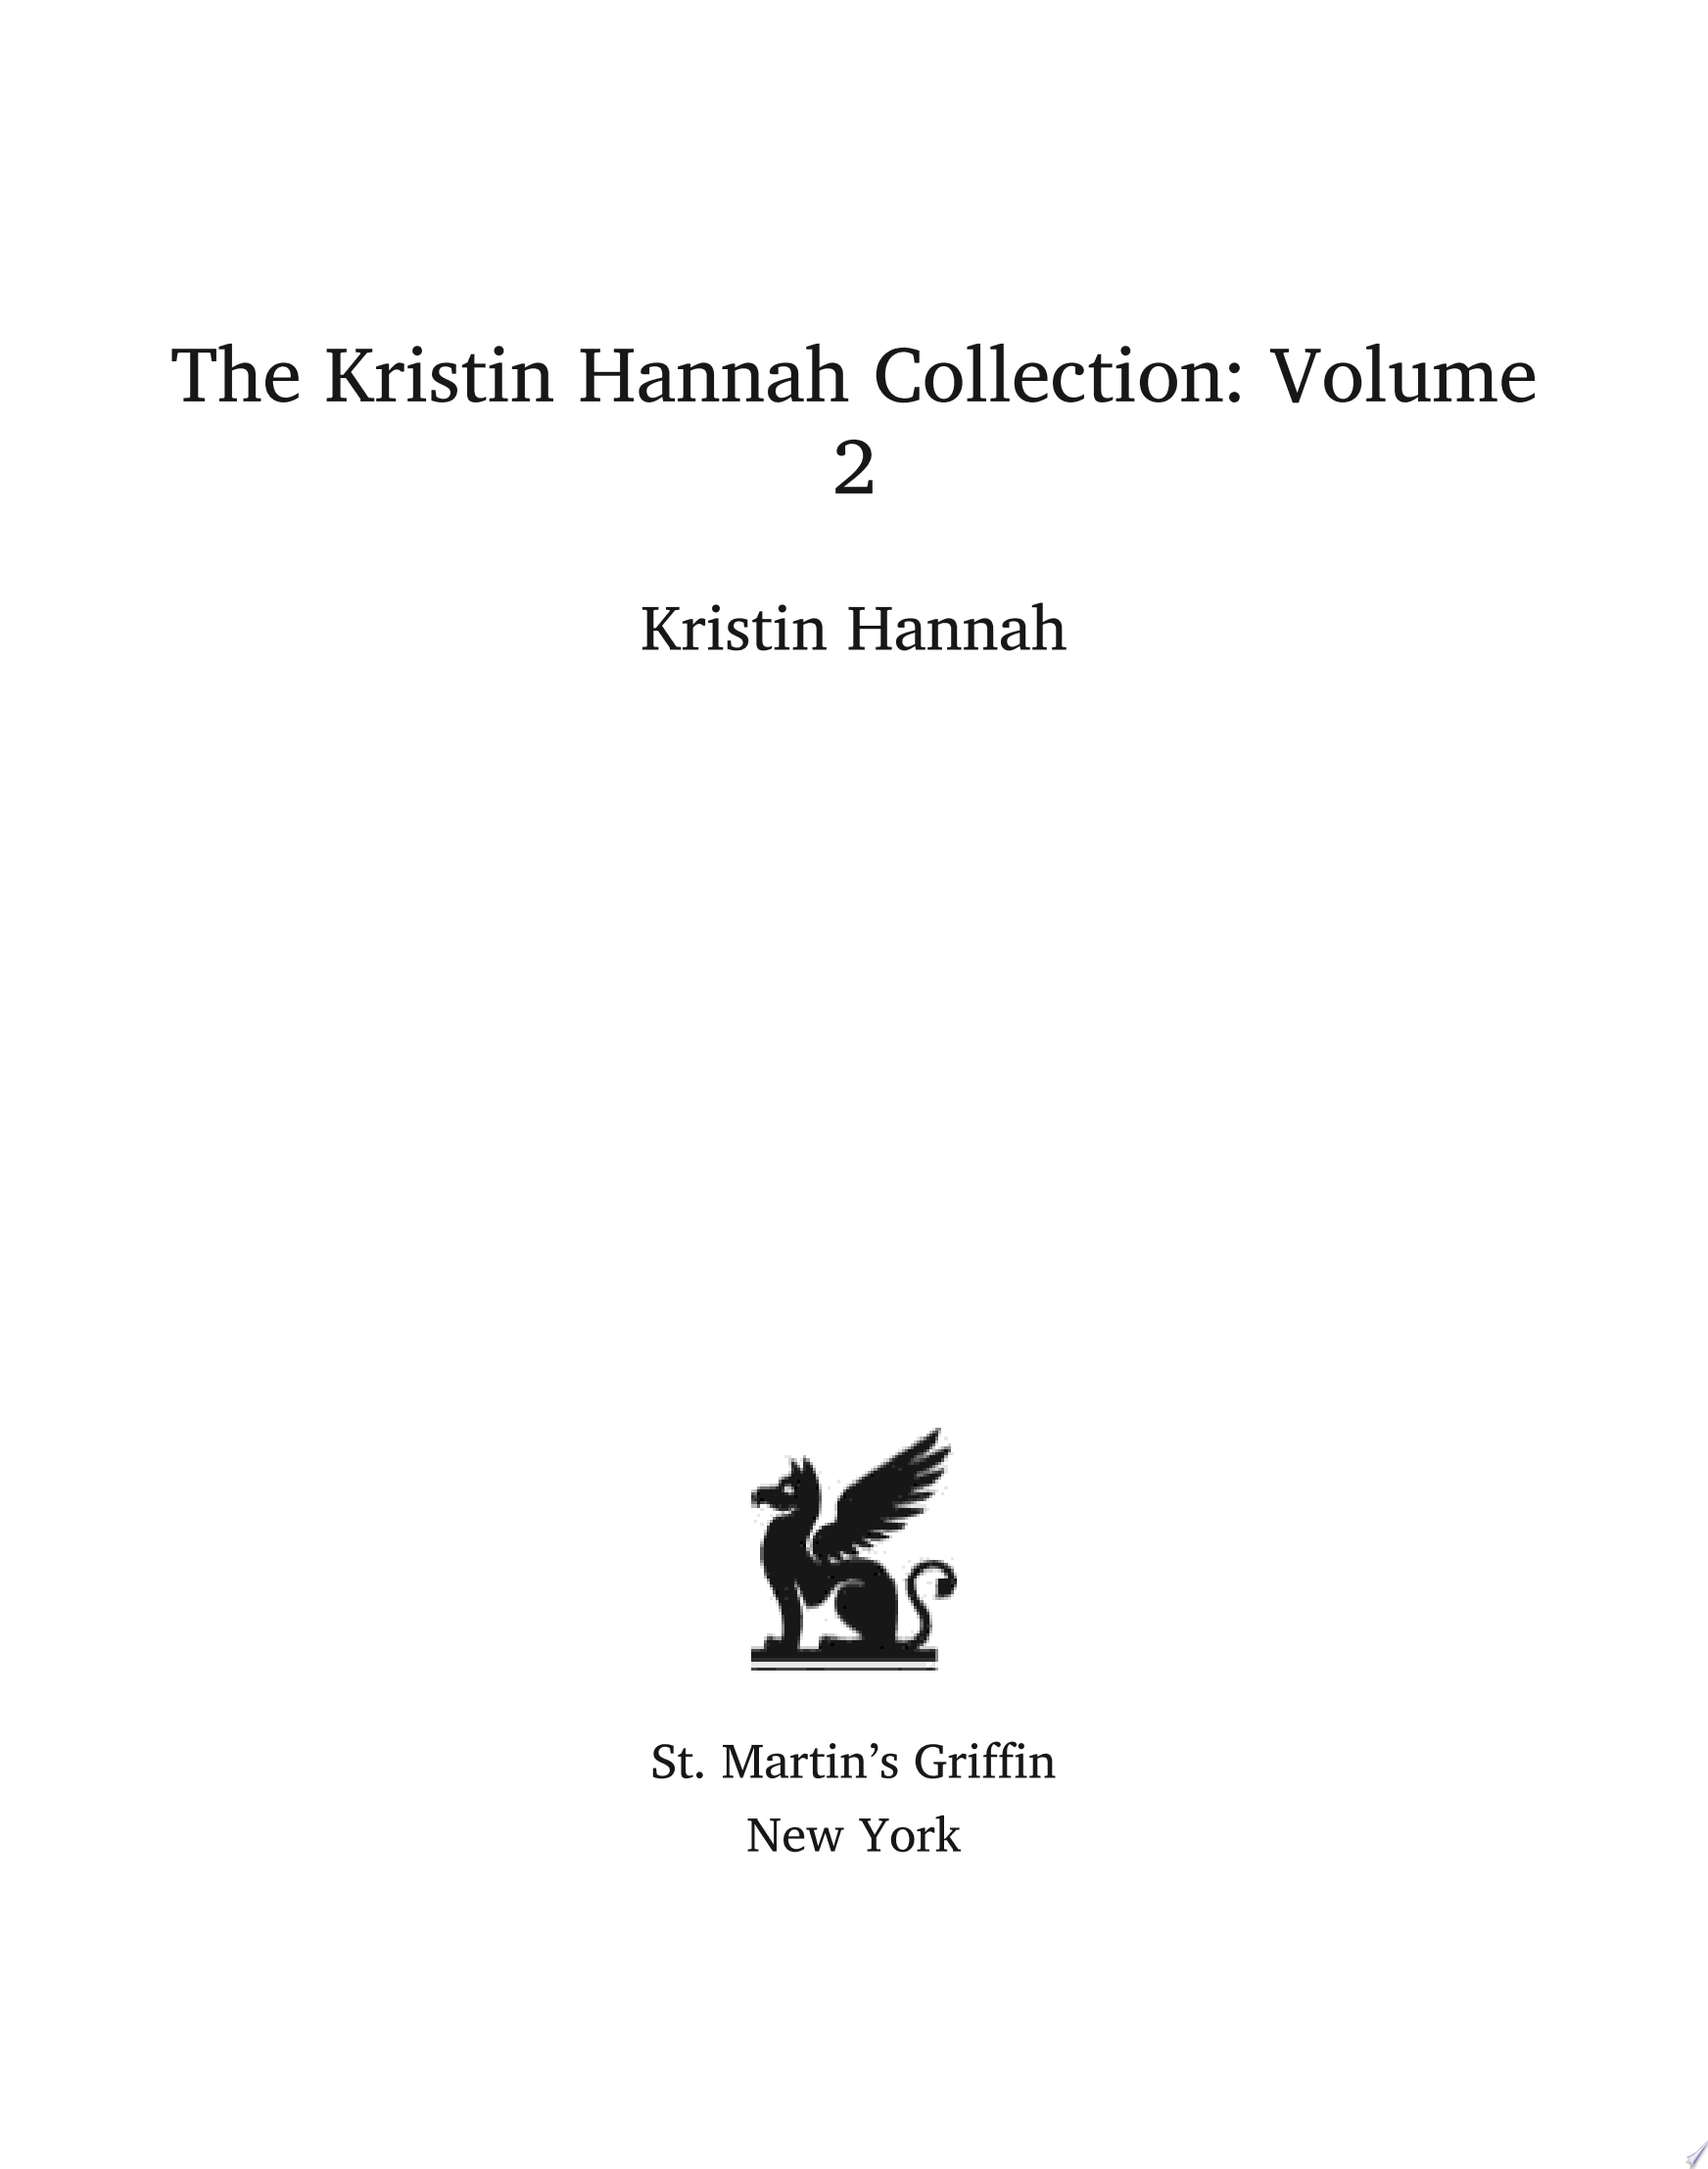 The Kristin Hannah Collection  Volume 2